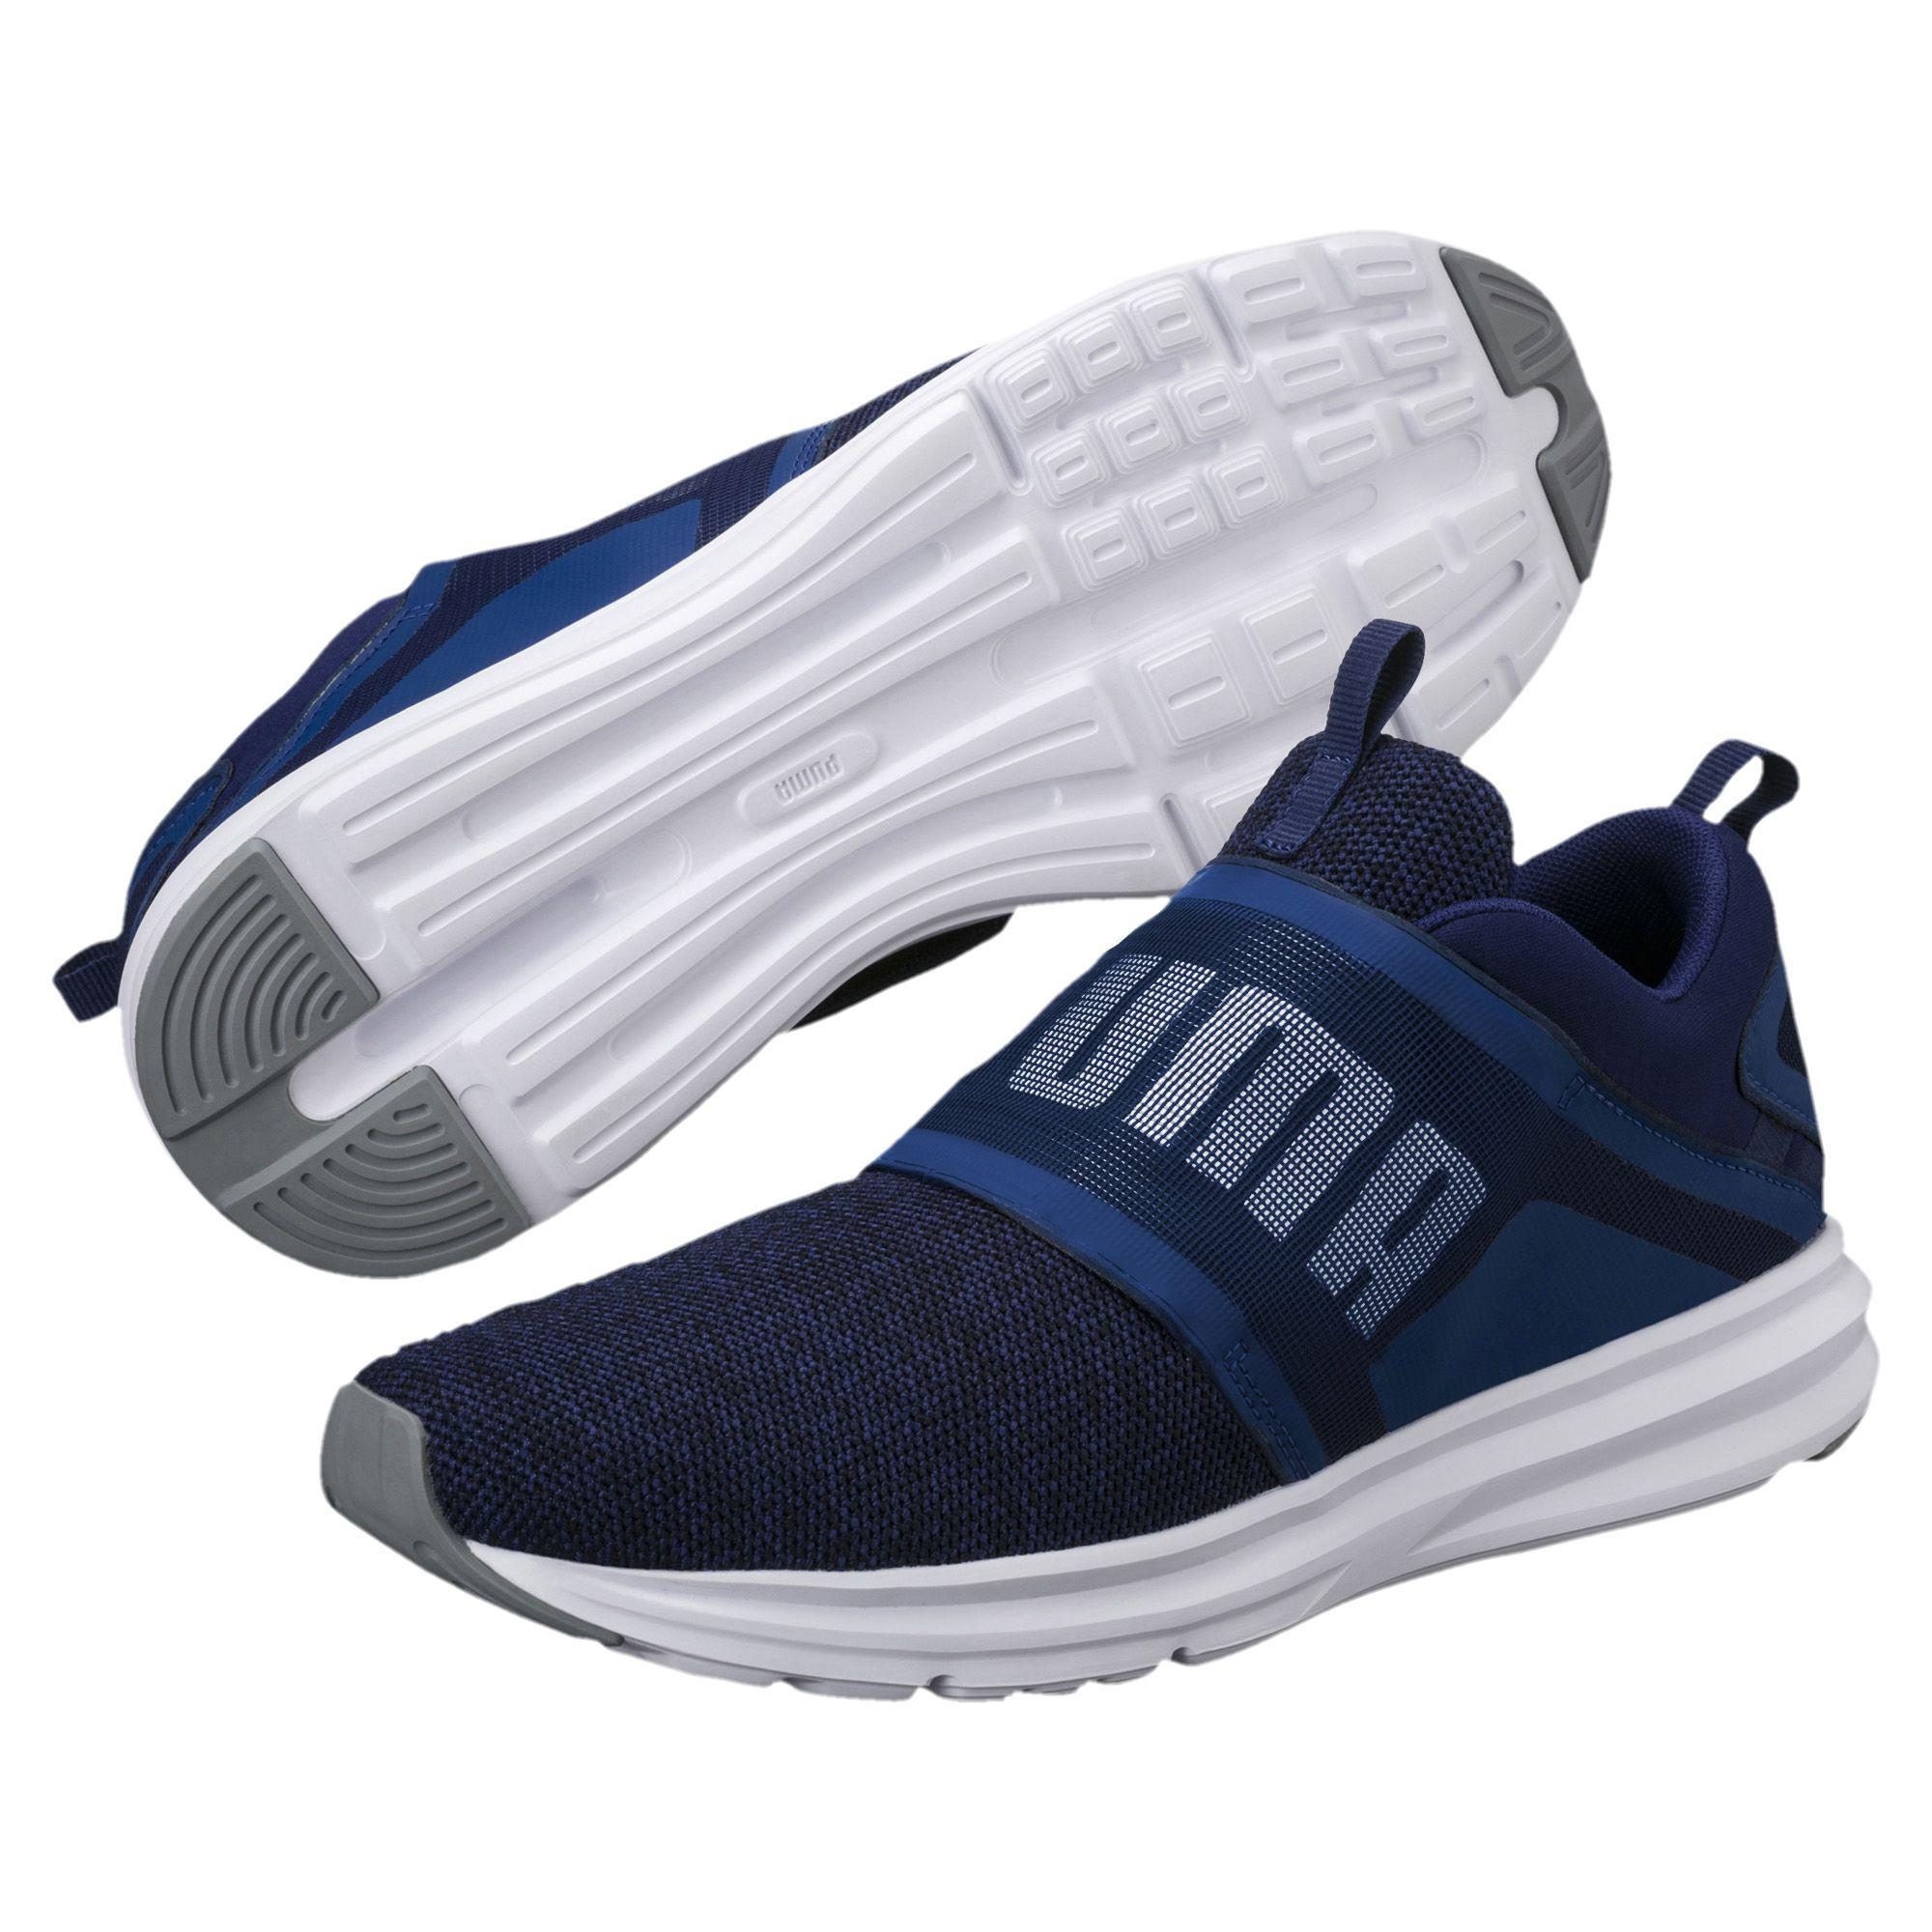 Lyst - Puma Enzo Strap Knit Men s Running Shoes in Blue for Men e6e776dfc